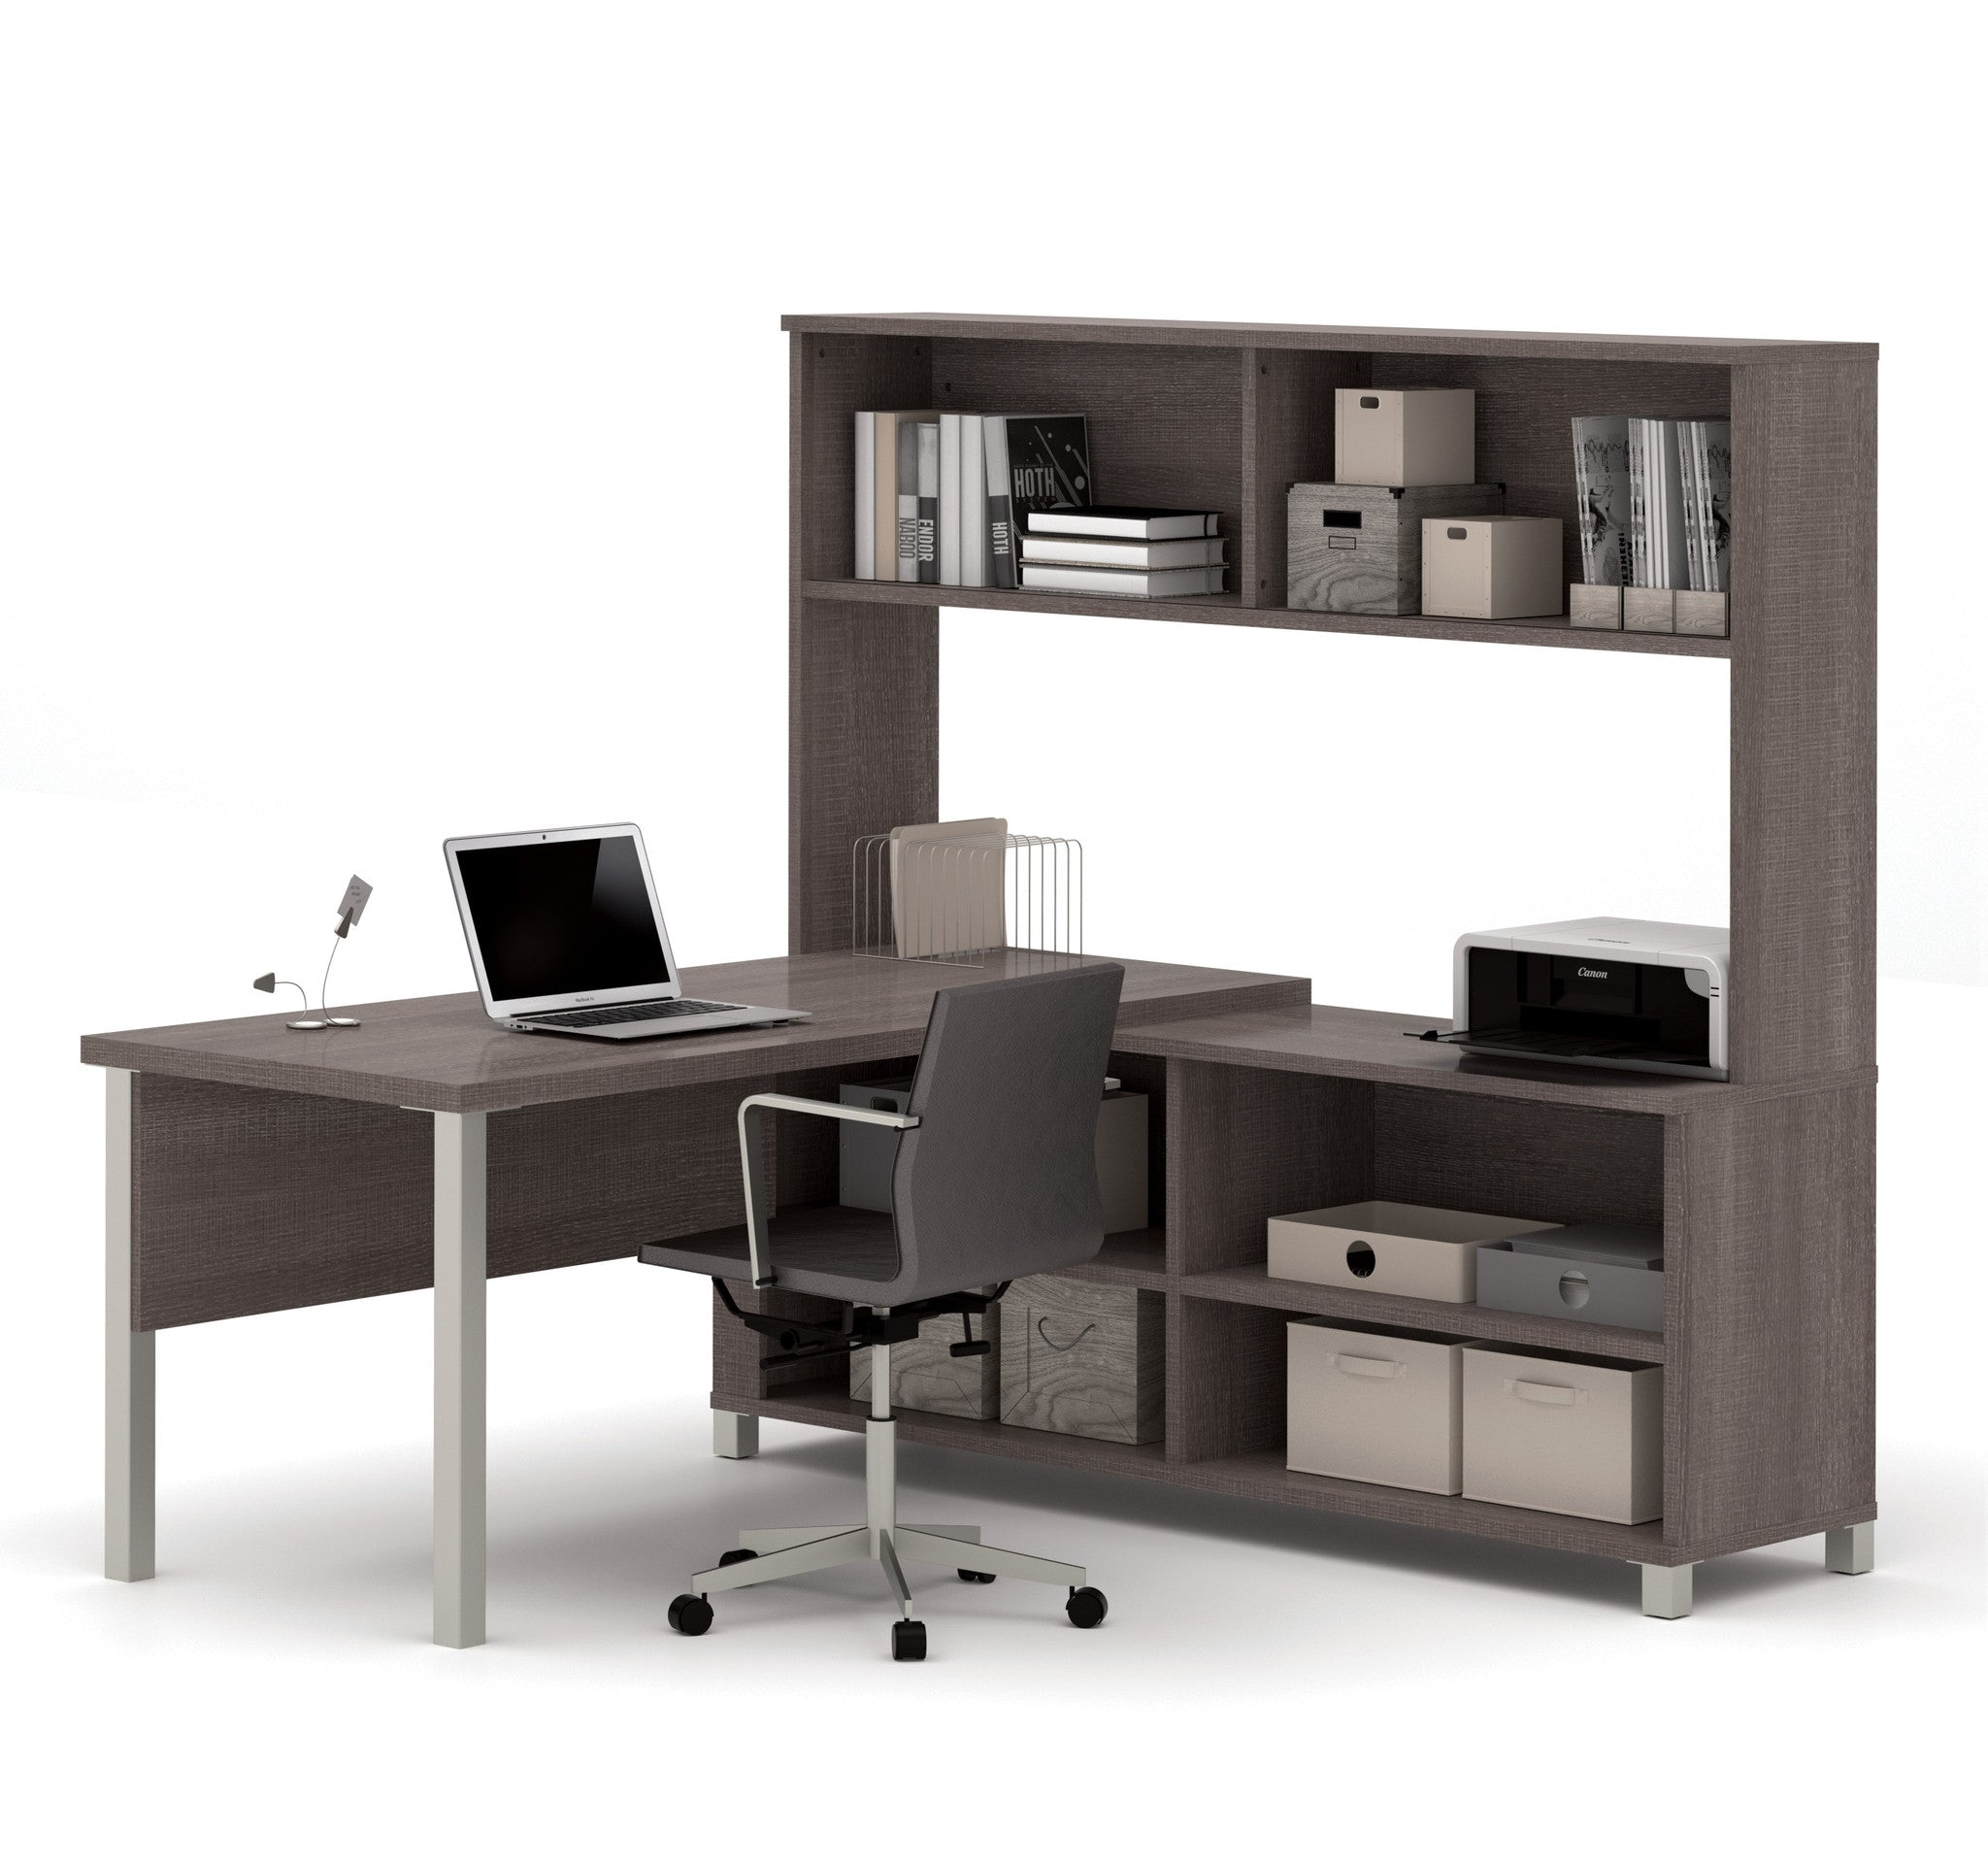 Premium Modern L-shaped Desk with Hutch in Bark Gray